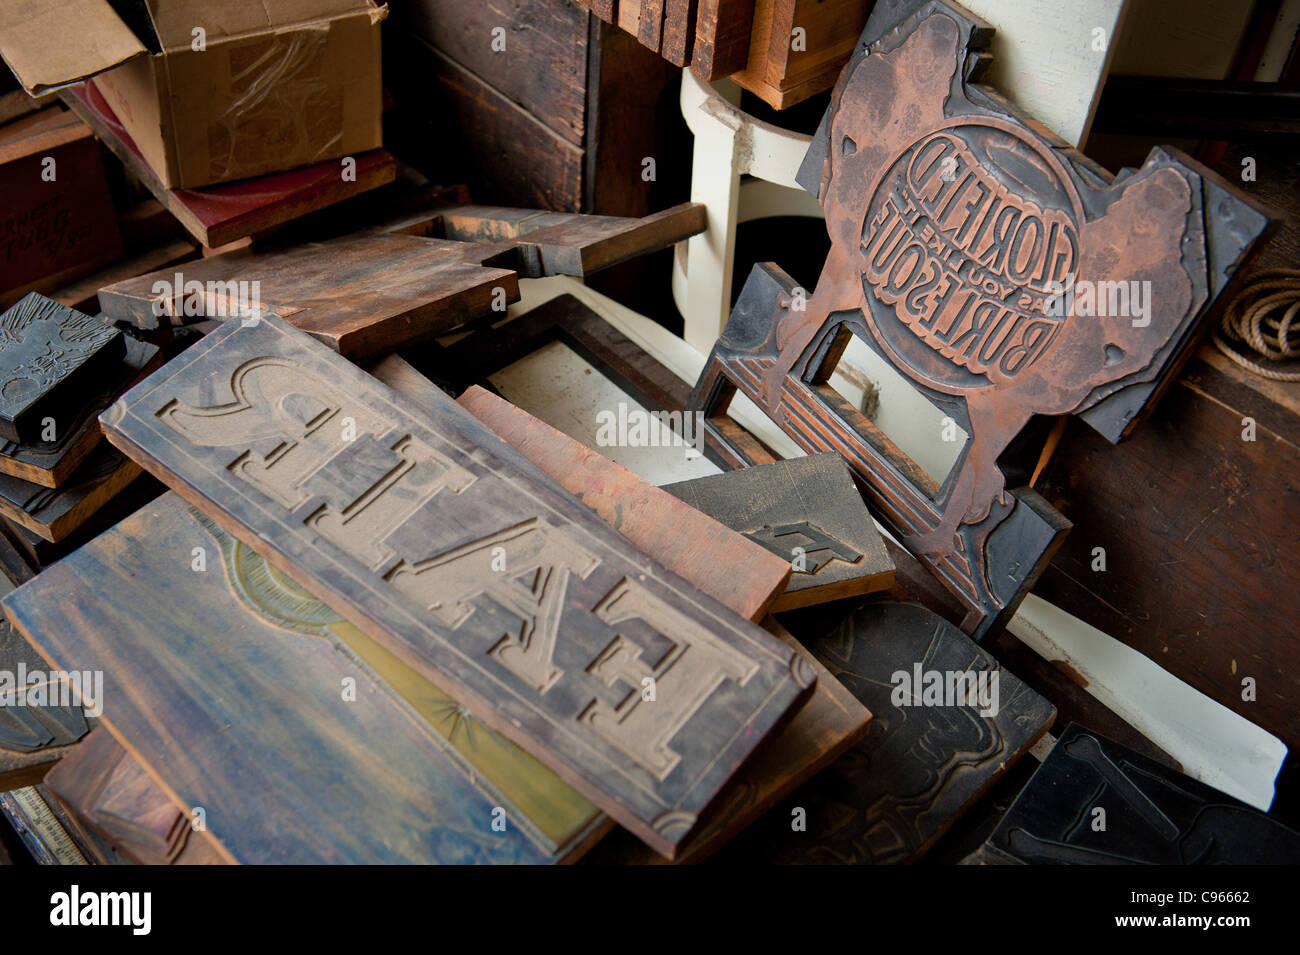 Print blocks for graphic art prints  - Stock Image